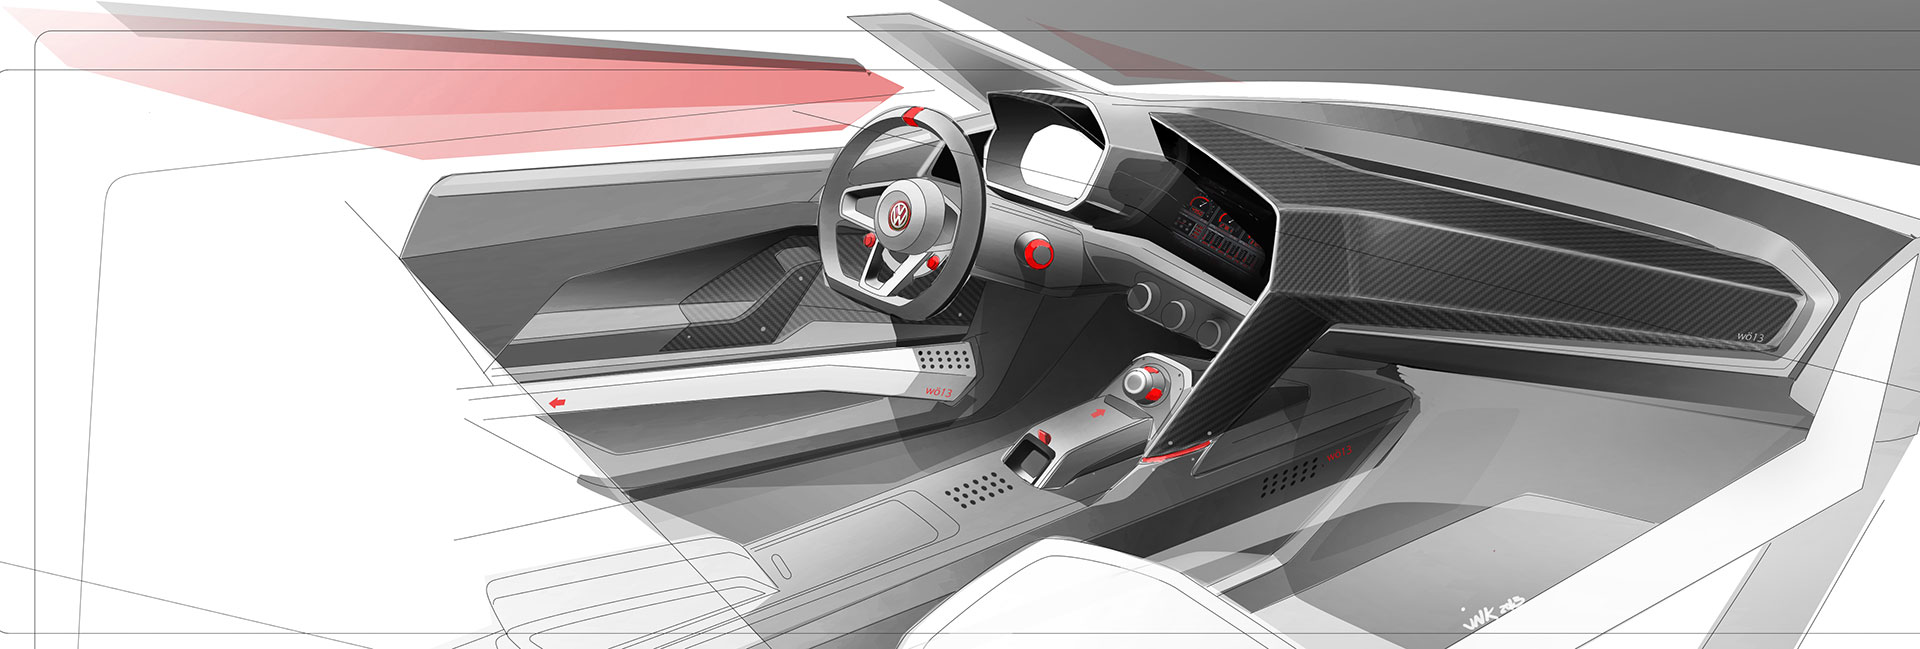 Volkswagen Design Vision Gti Interior Design Sketch Car Body Design